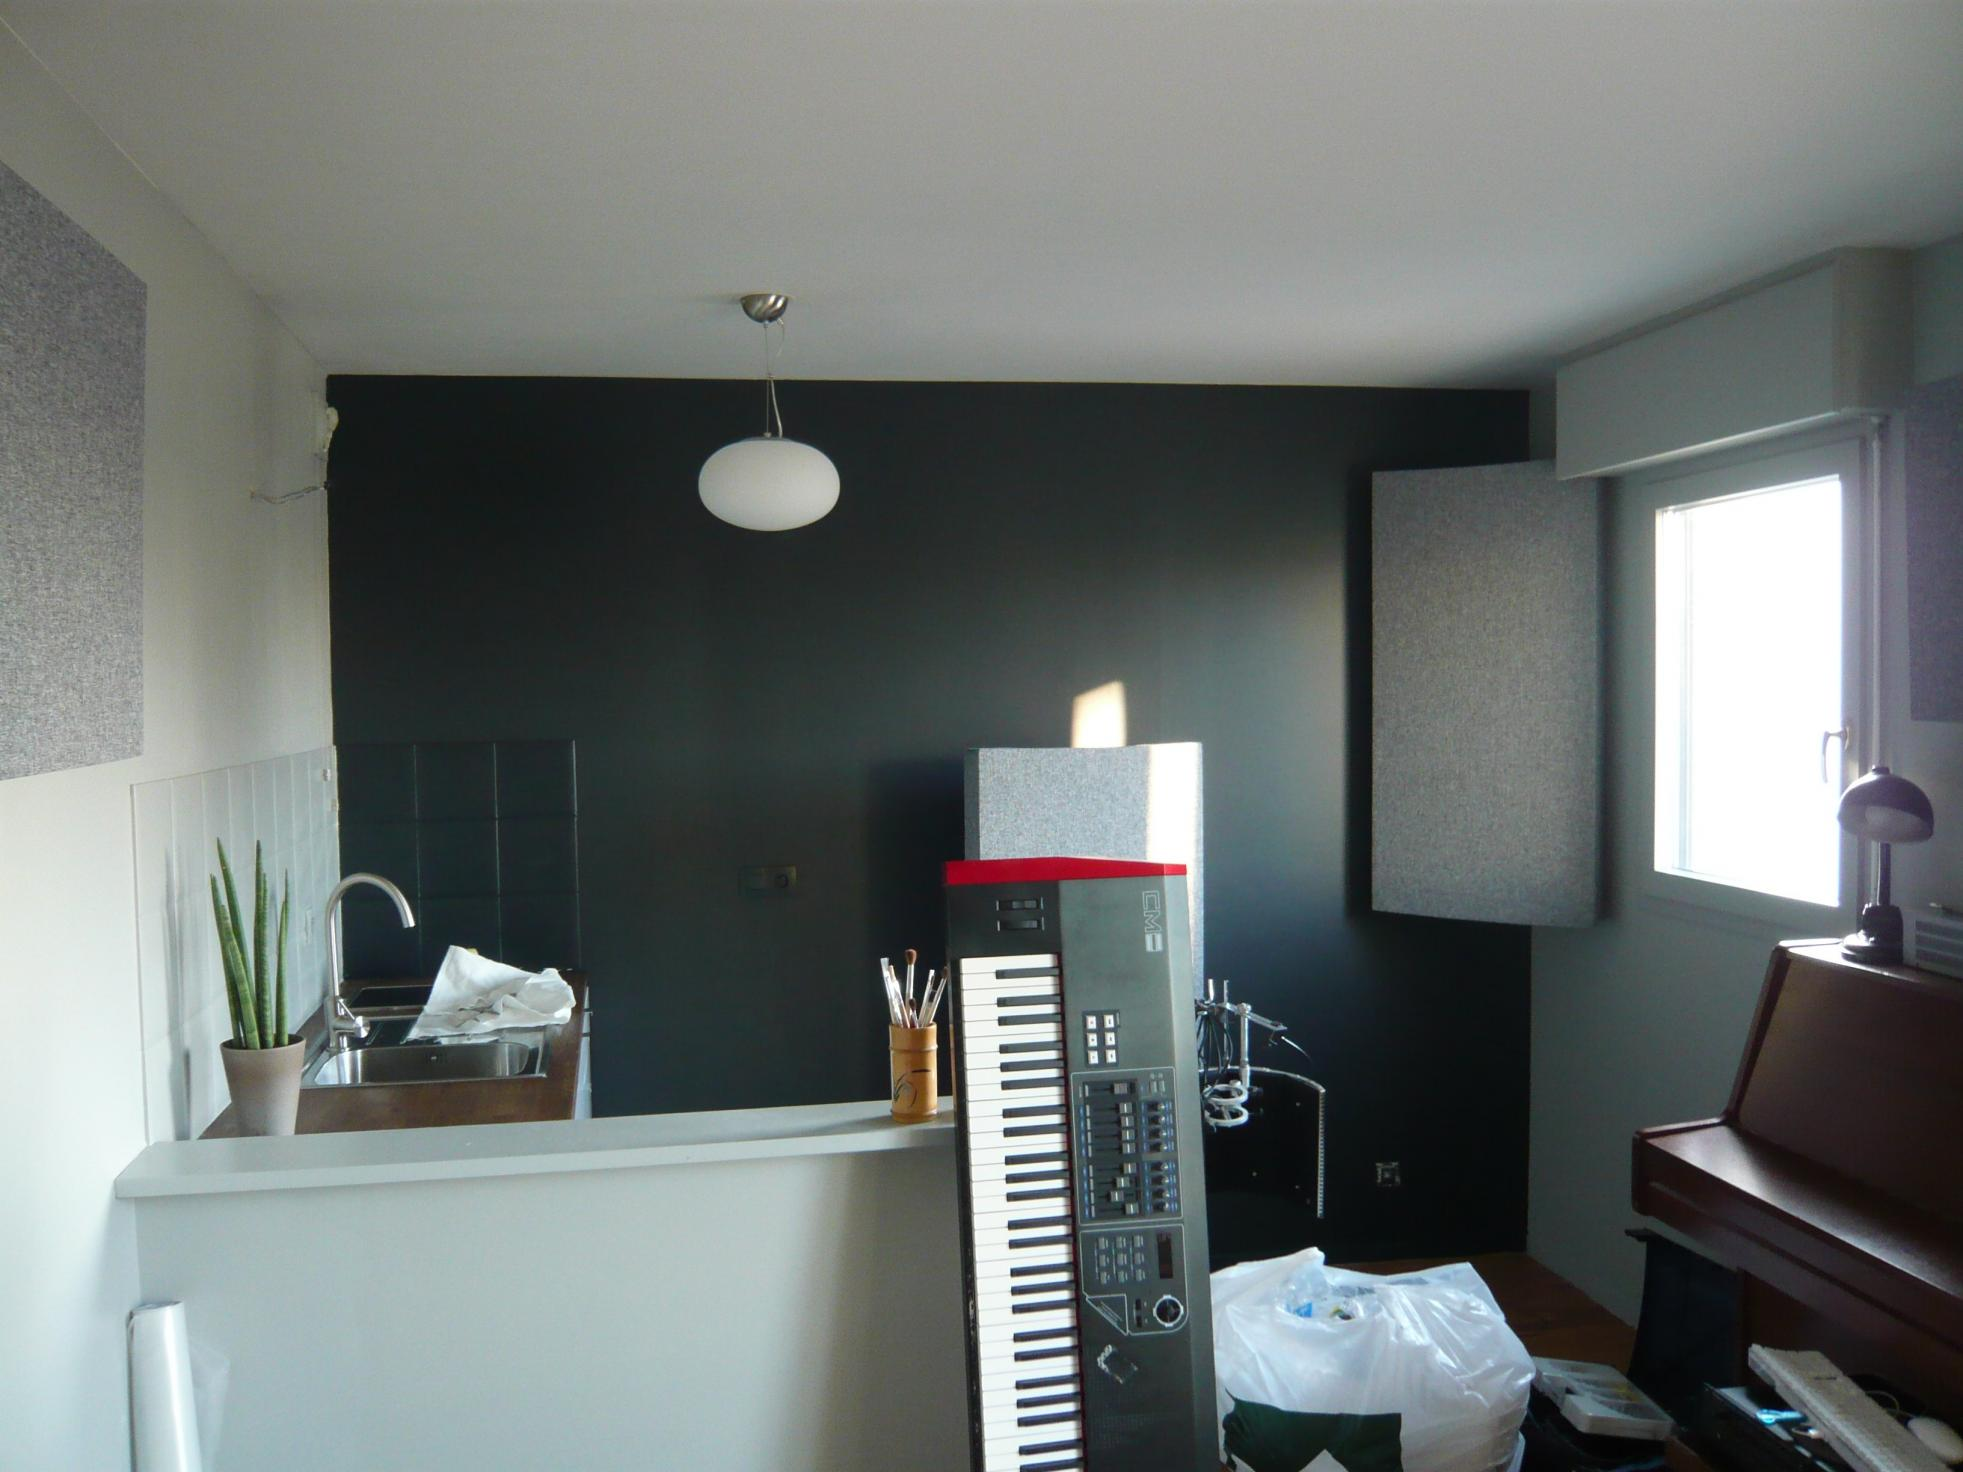 Gearslutz pro audio community view single post my new for My new home